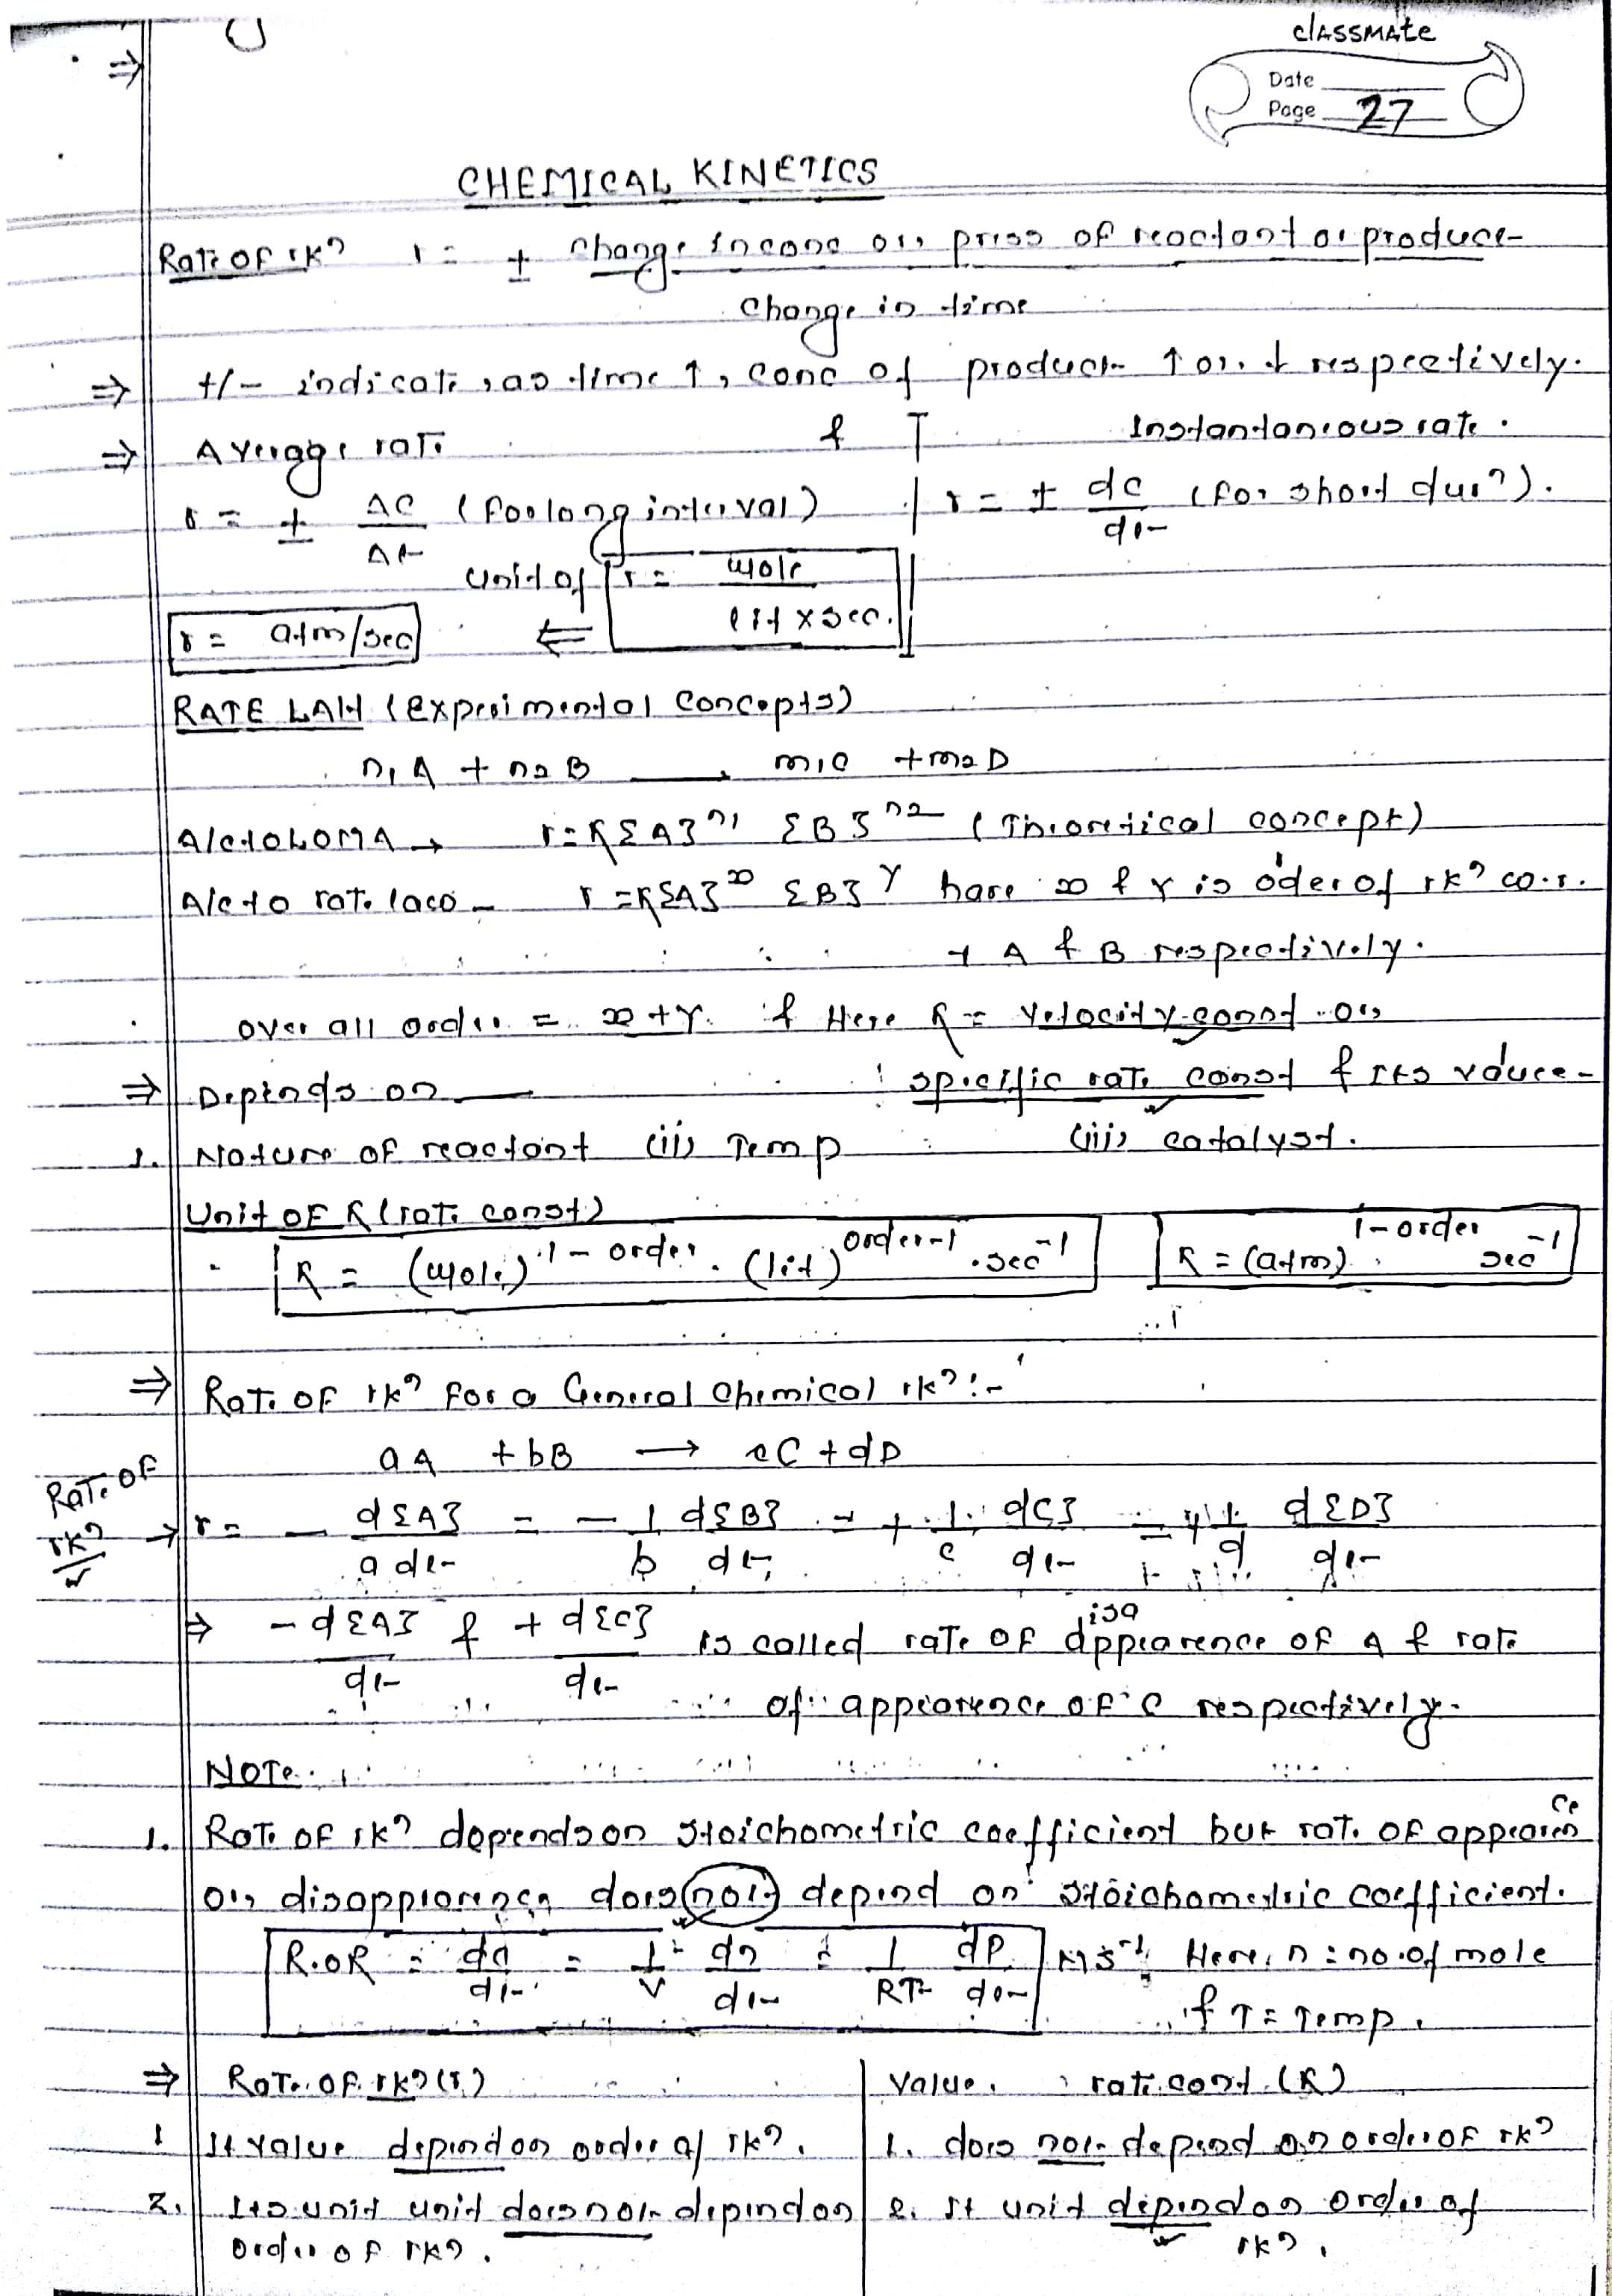 Chemical Kinetics_1